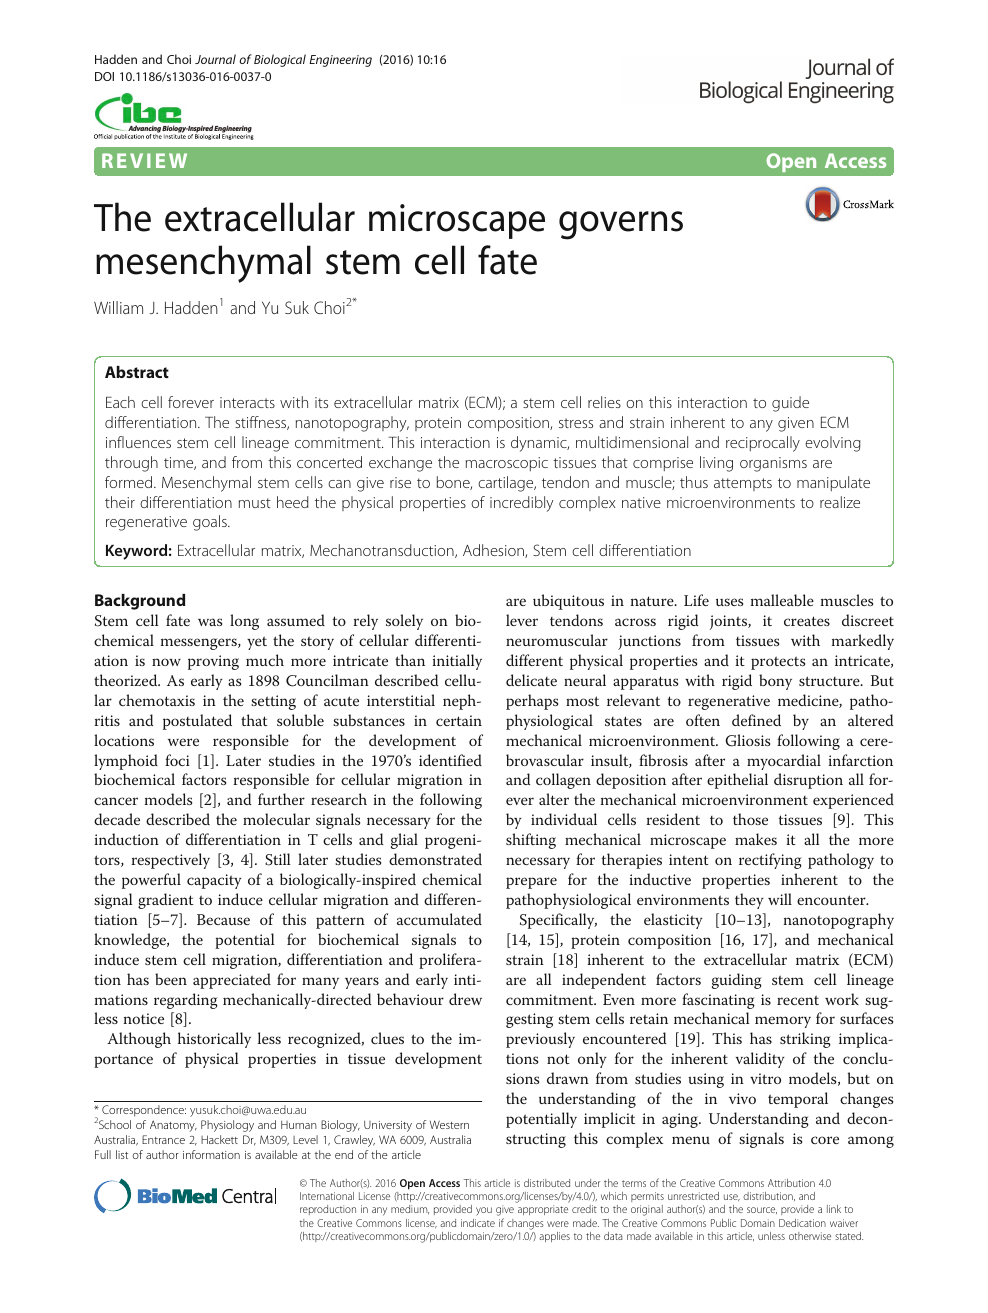 The extracellular microscape governs mesenchymal stem cell fate